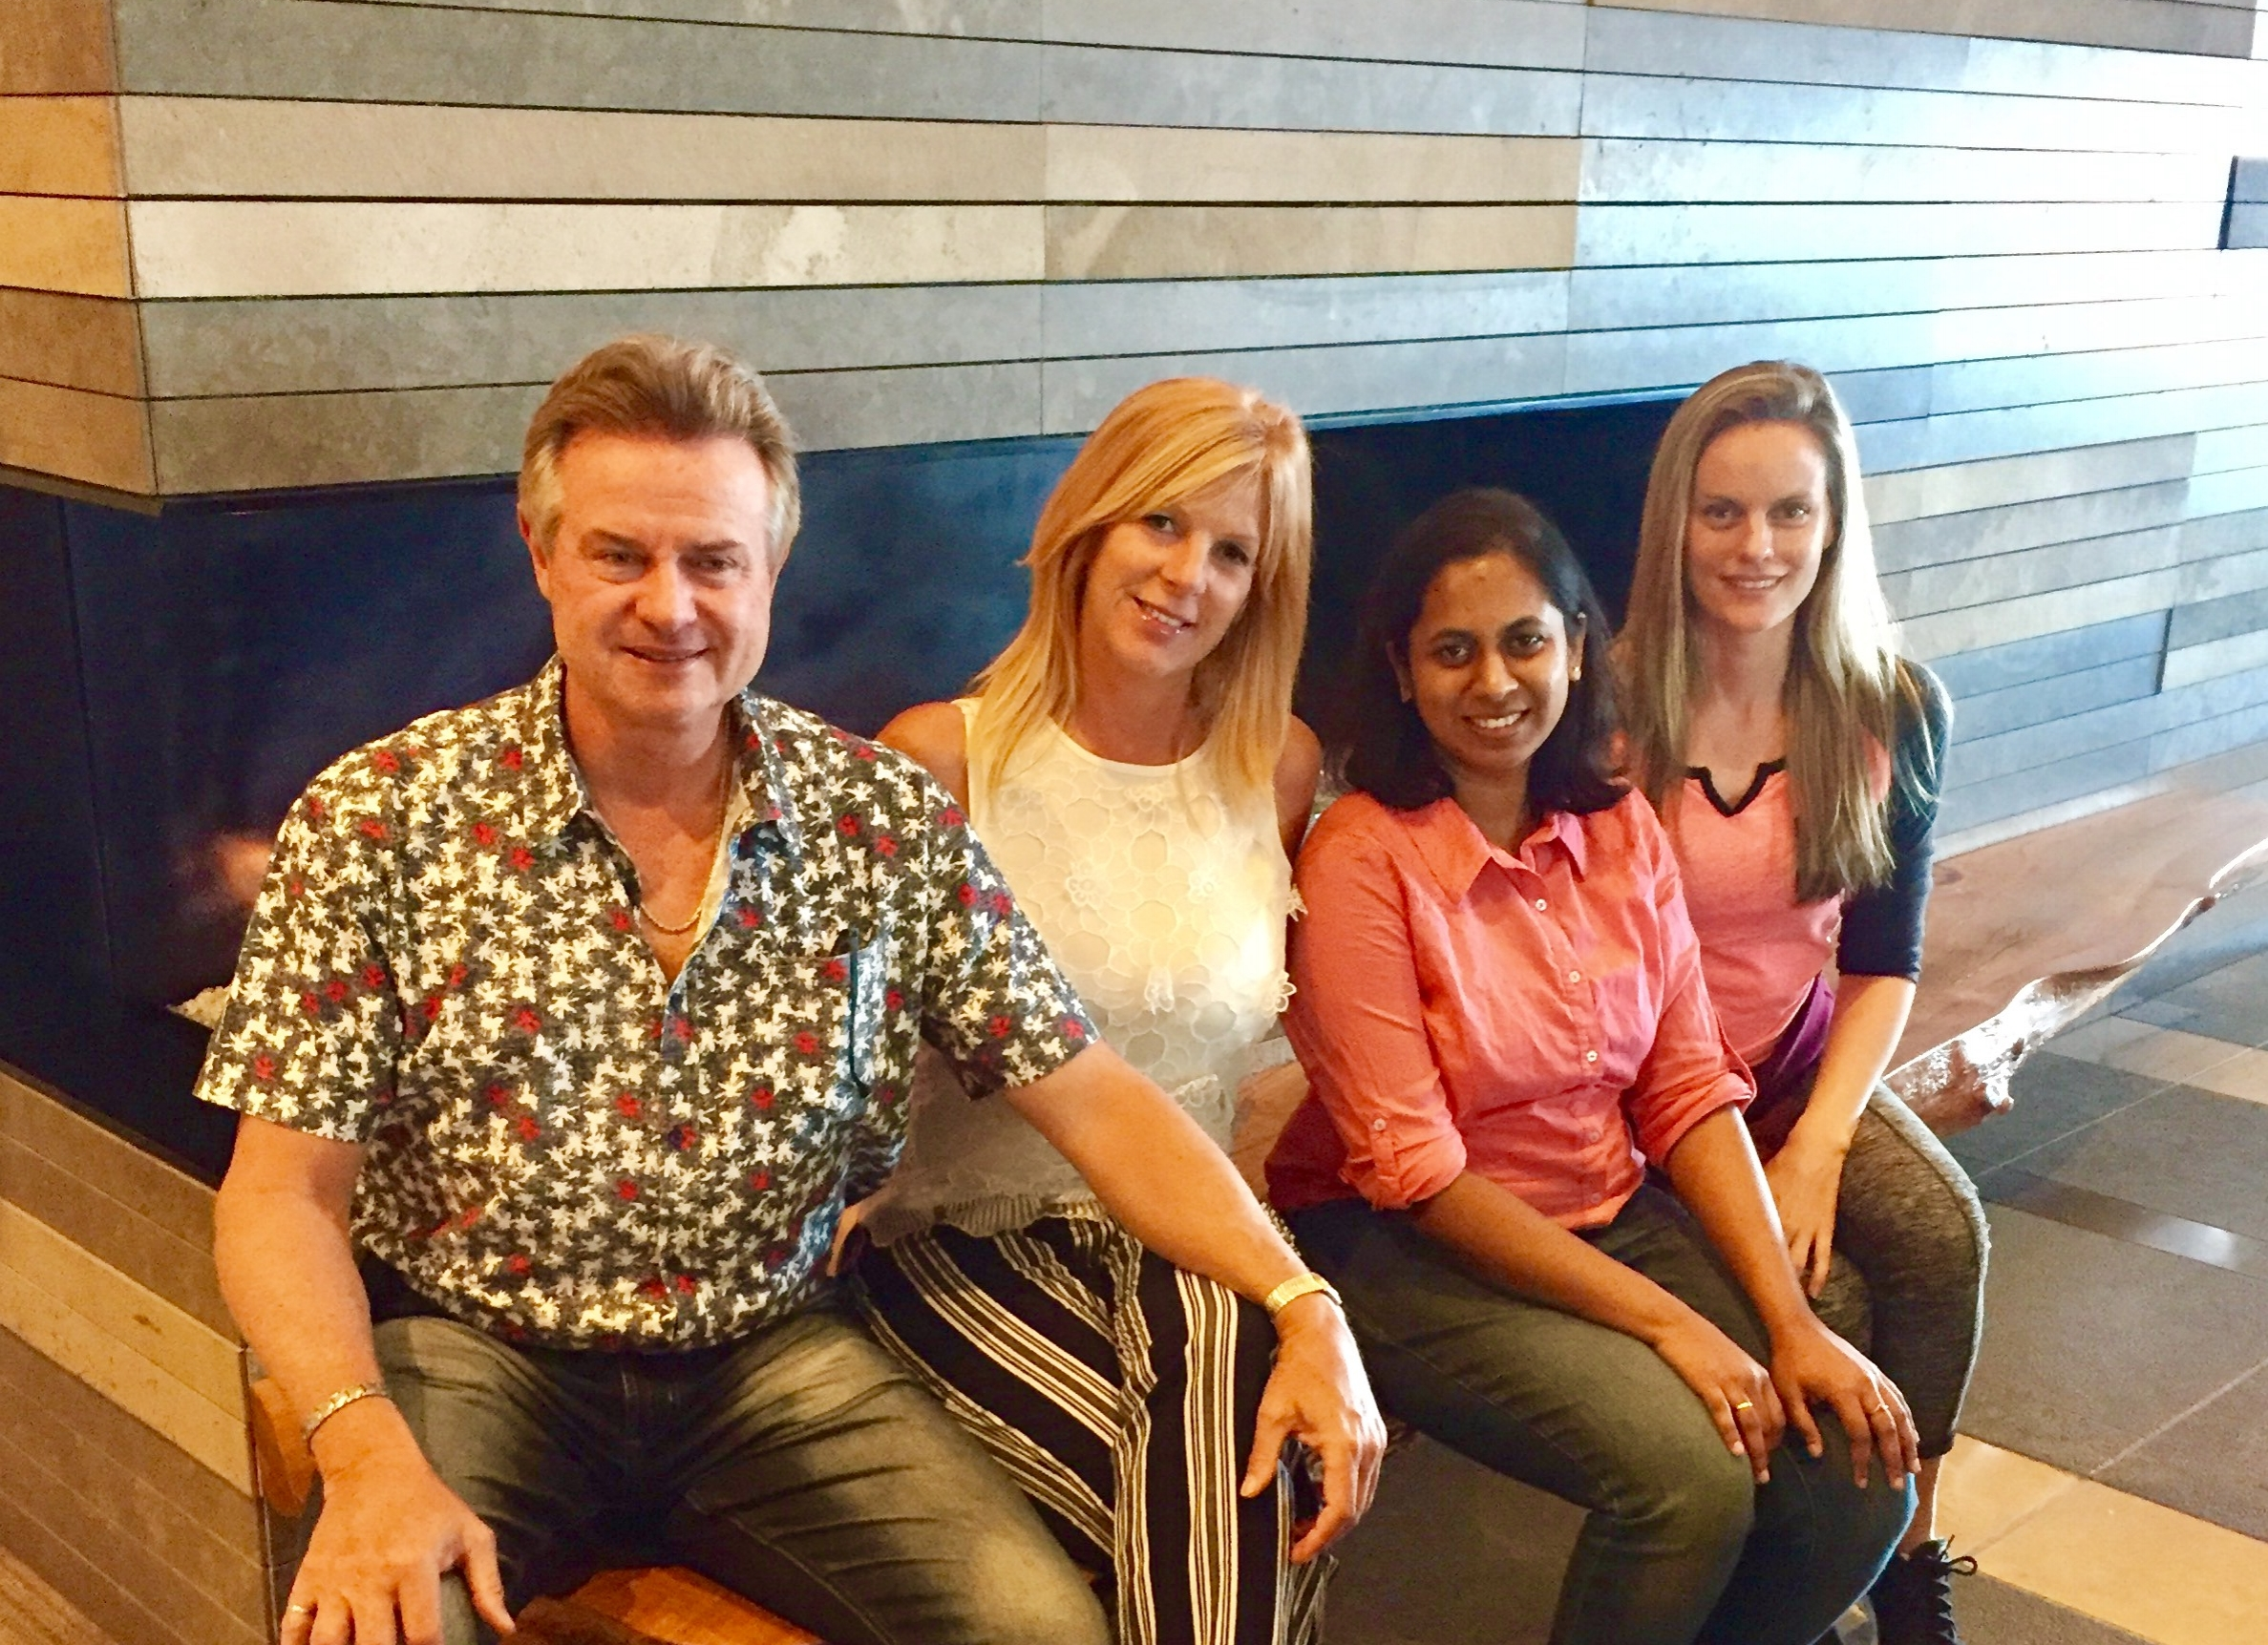 Michael, Stacey, Nithya, and Jennifer gathering at a meeting in downtown Seattle on July 5, 2017.